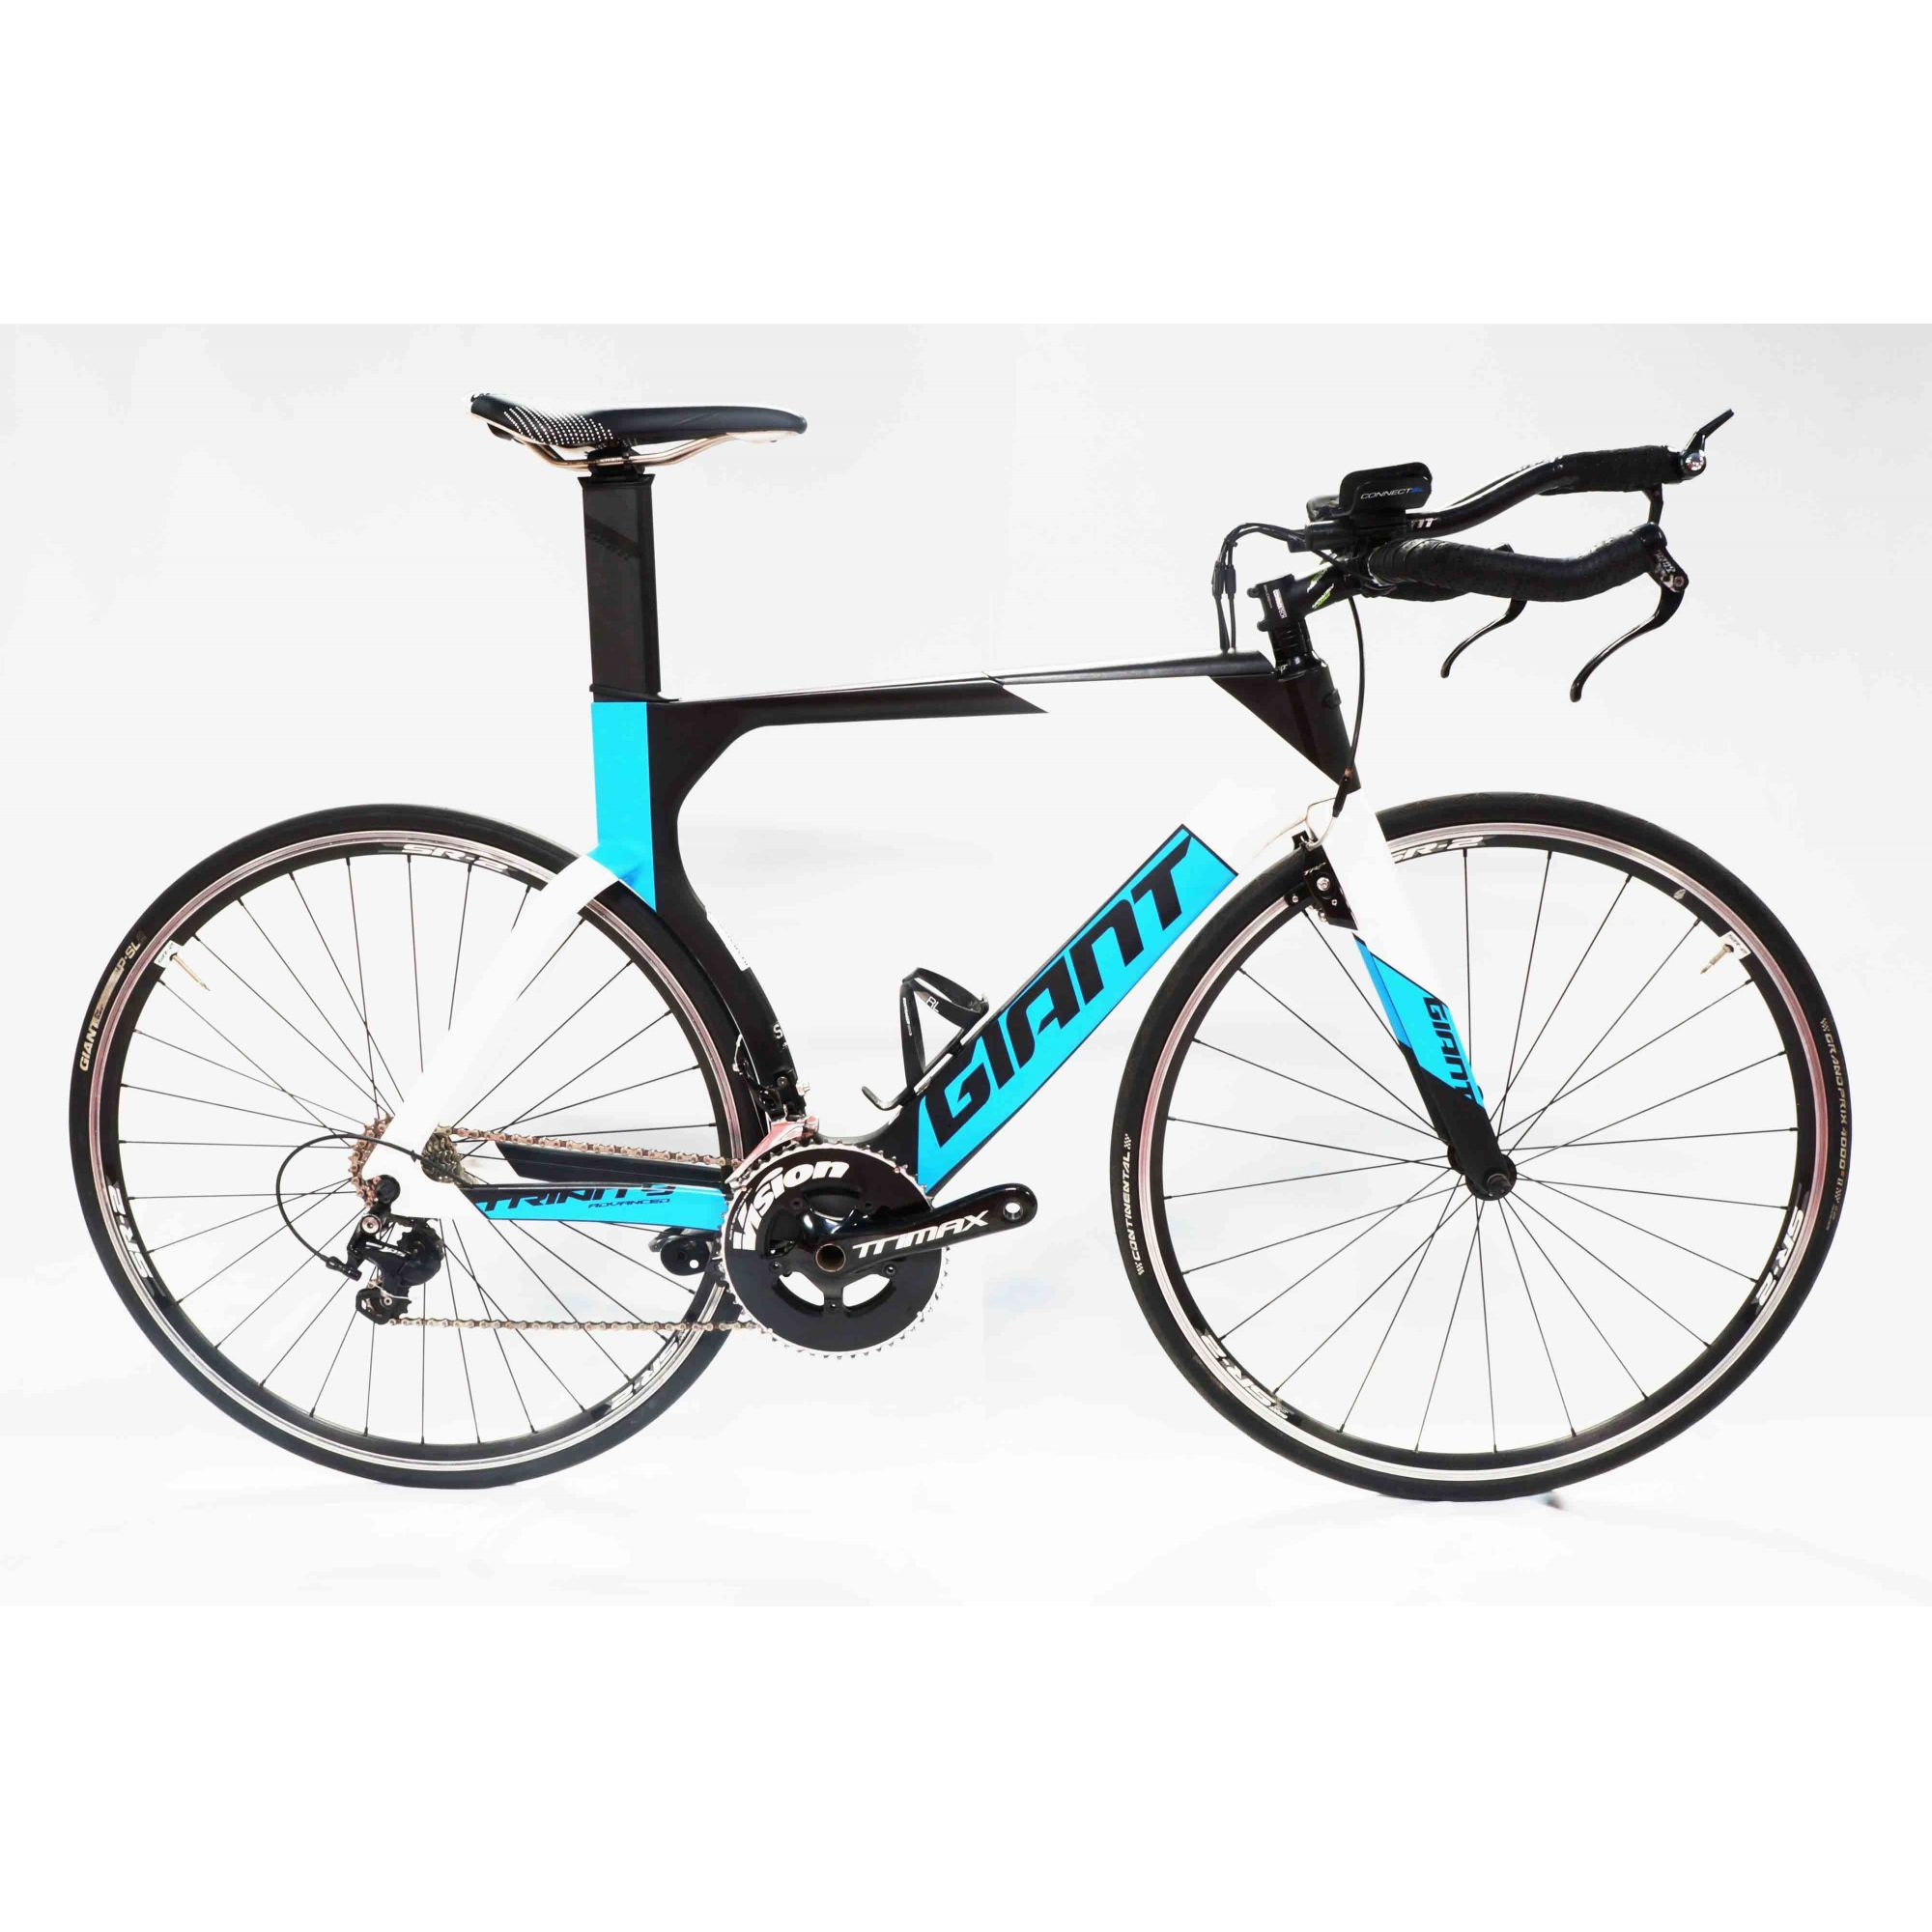 BICICLETA 700 GIANT TRINITY ADVANCED T.S PRETO/AZUL (semi nova)